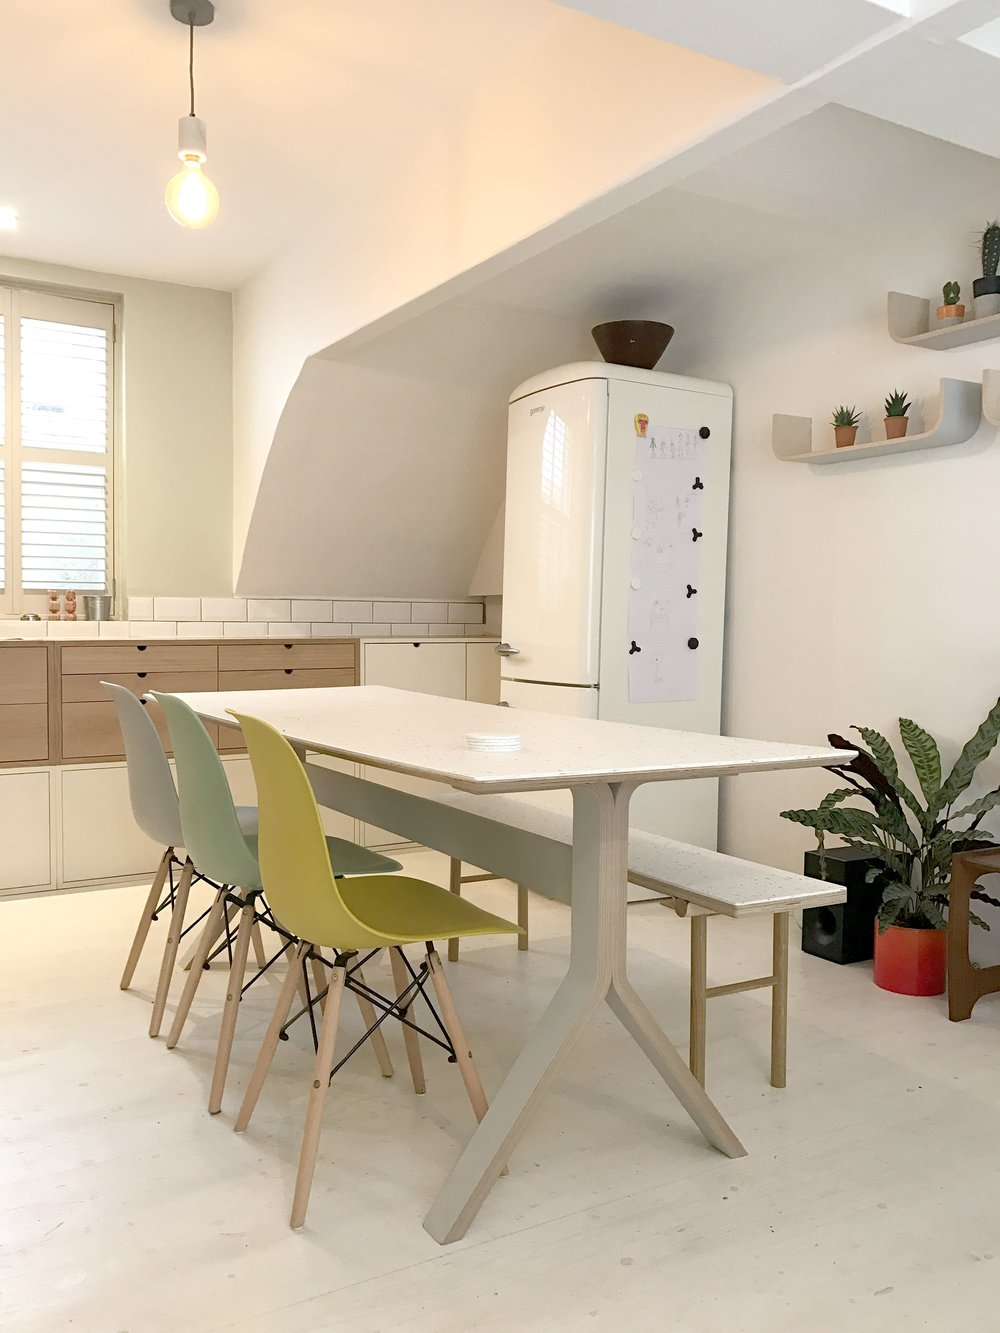 A bespoke Wave Bench, with recycled yogurt pot surface, matches Anna & Kirsty's Sea table in their Brighton kitchen.